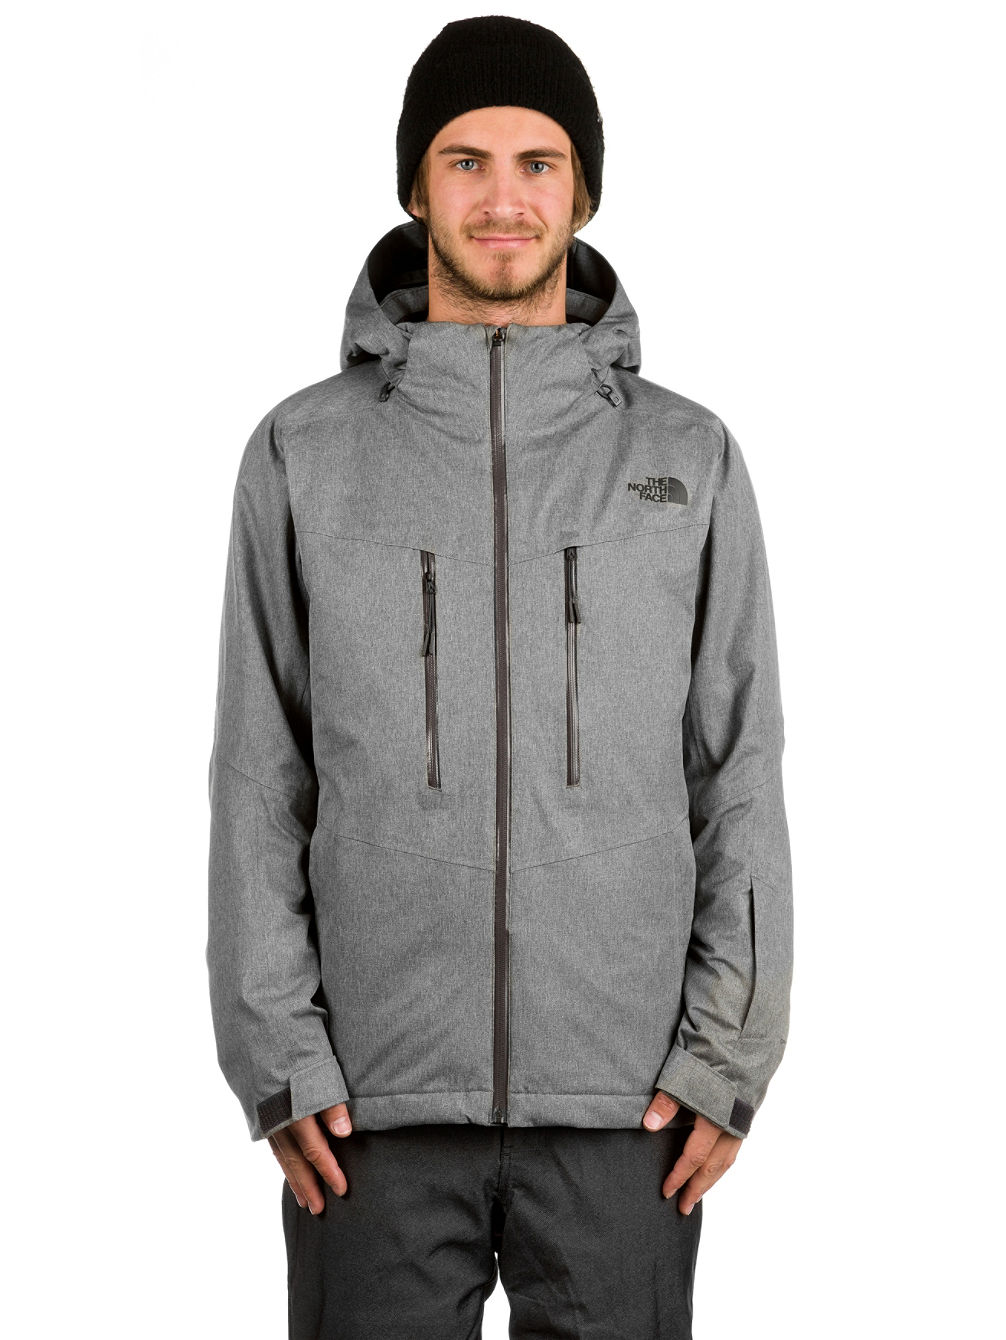 Compra THE NORTH FACE Chakal Giacca online su blue-tomato.com 201d4cd3a9eb